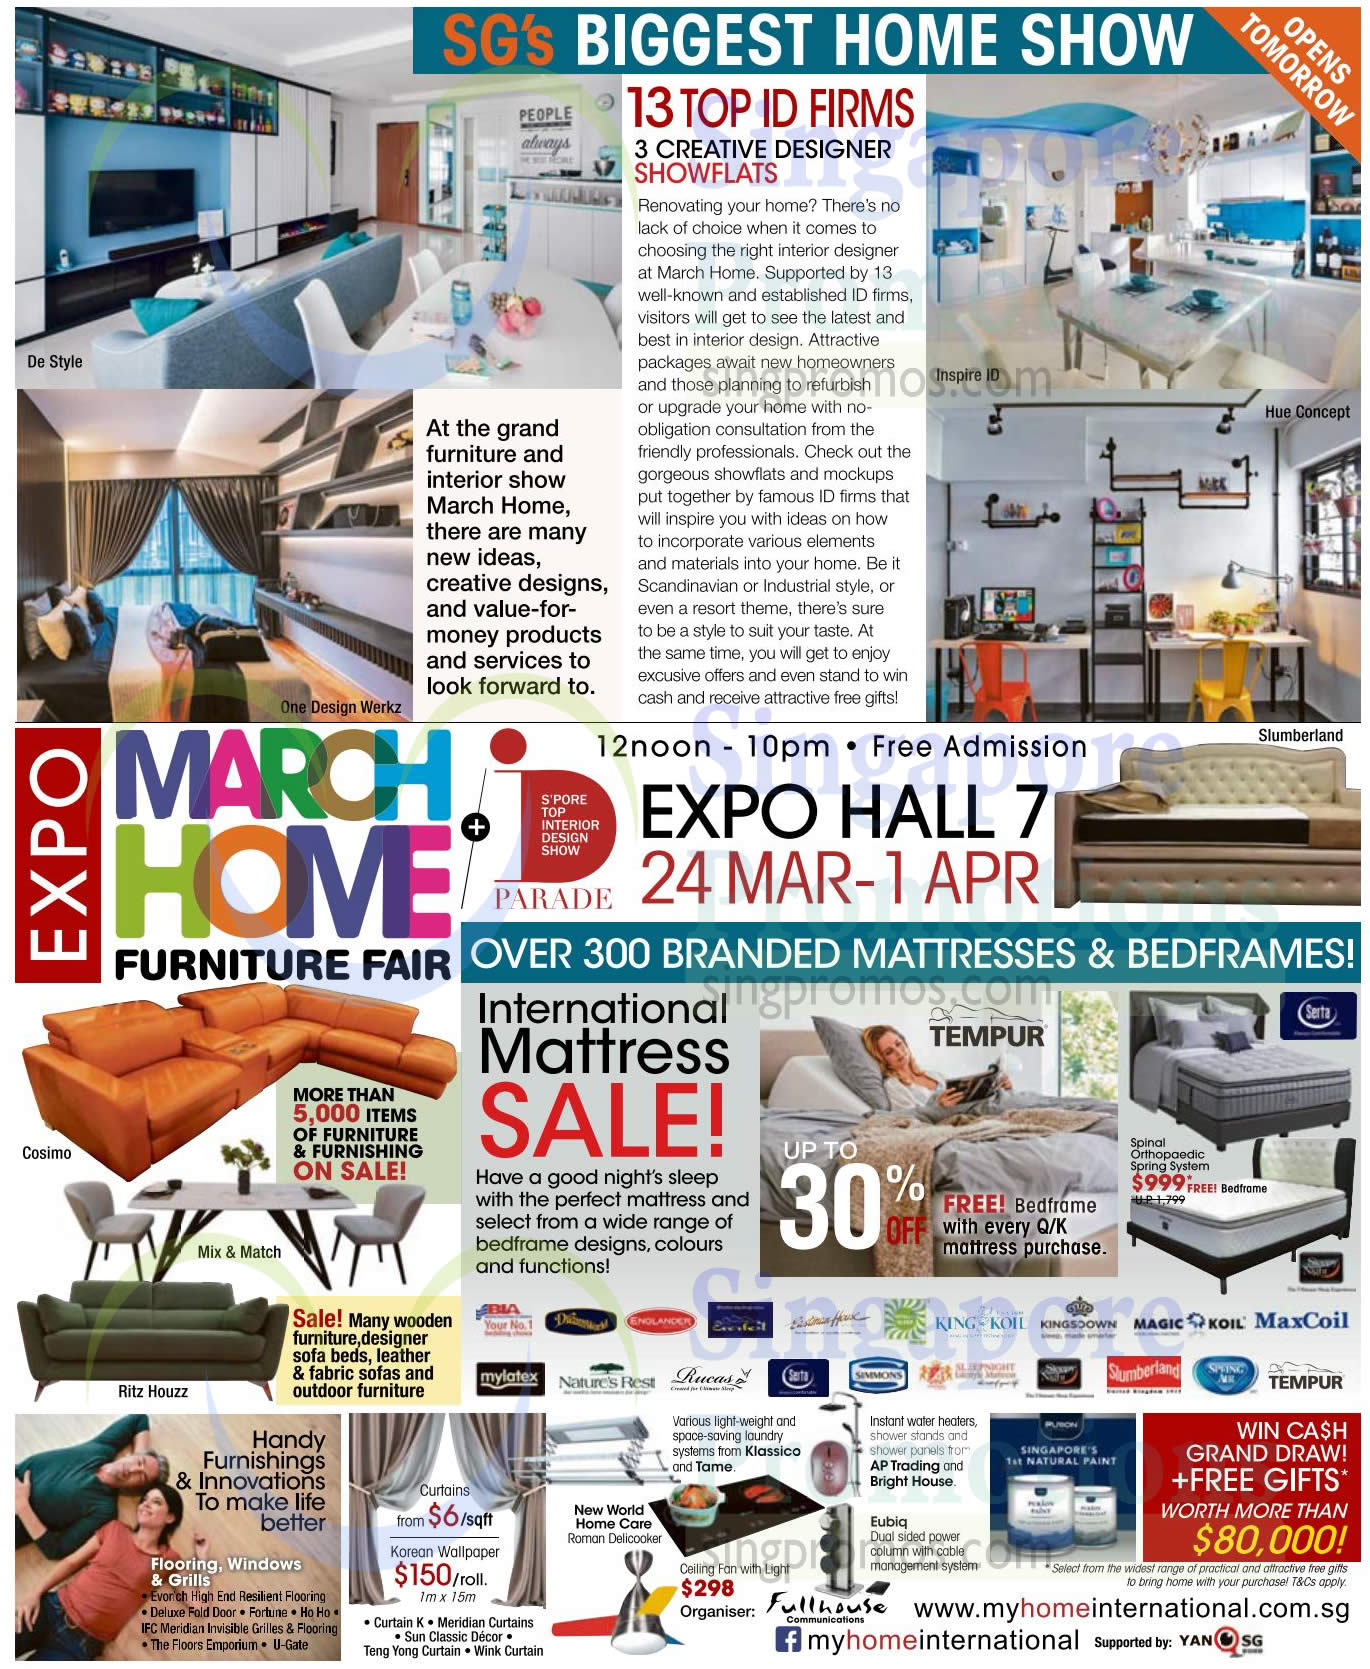 March Home Furniture Fair At Singapore Expo From 24 Mar 1 Apr 2018